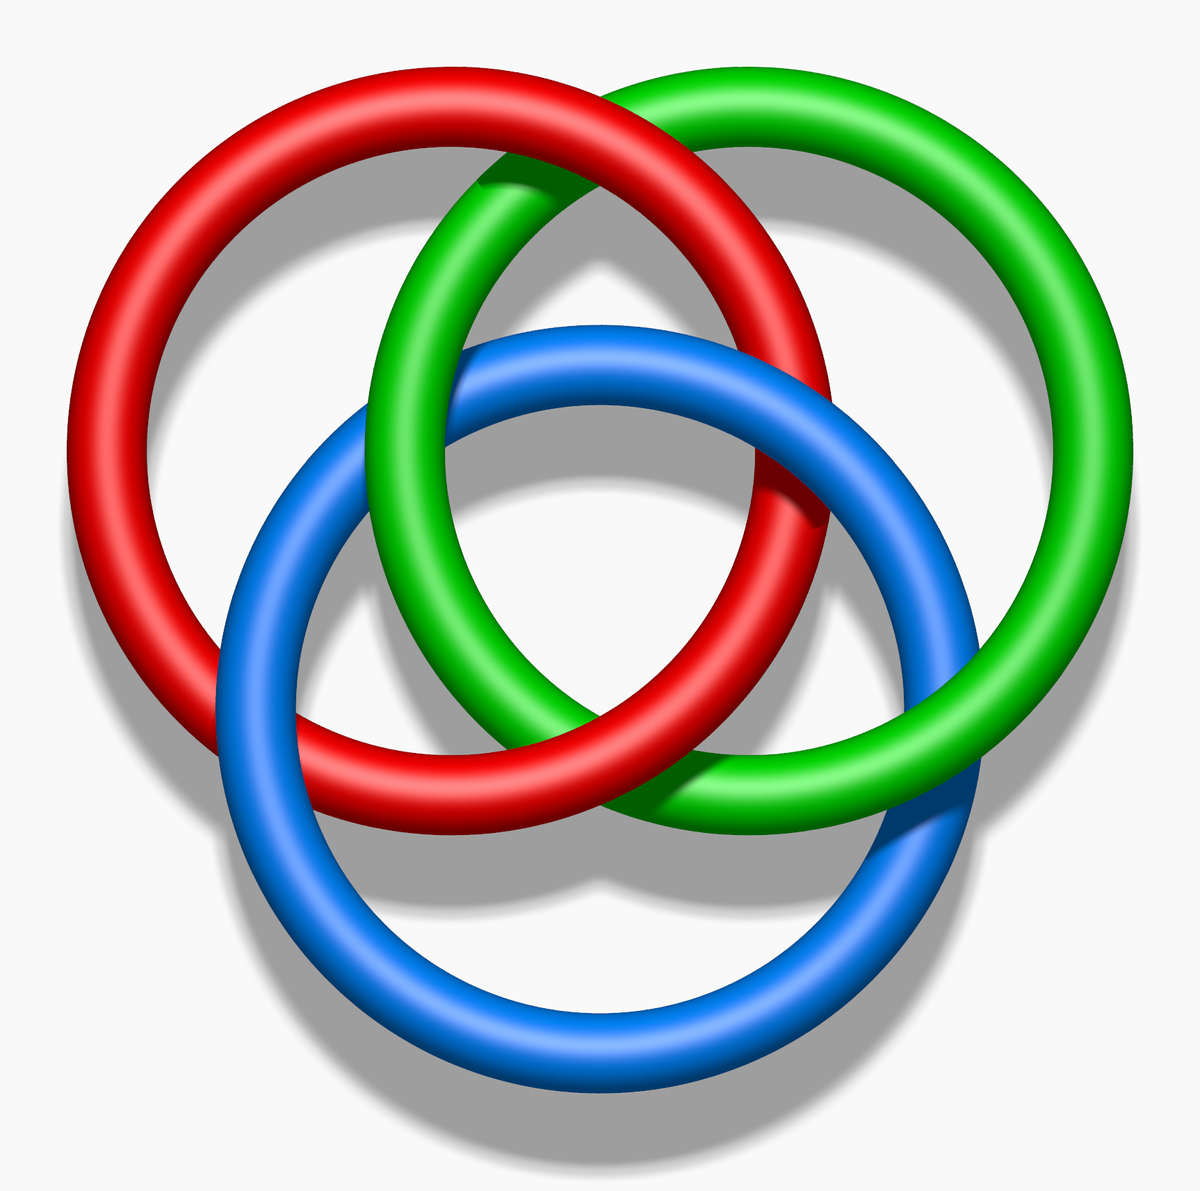 Borromean rings wikipedia biocorpaavc Images